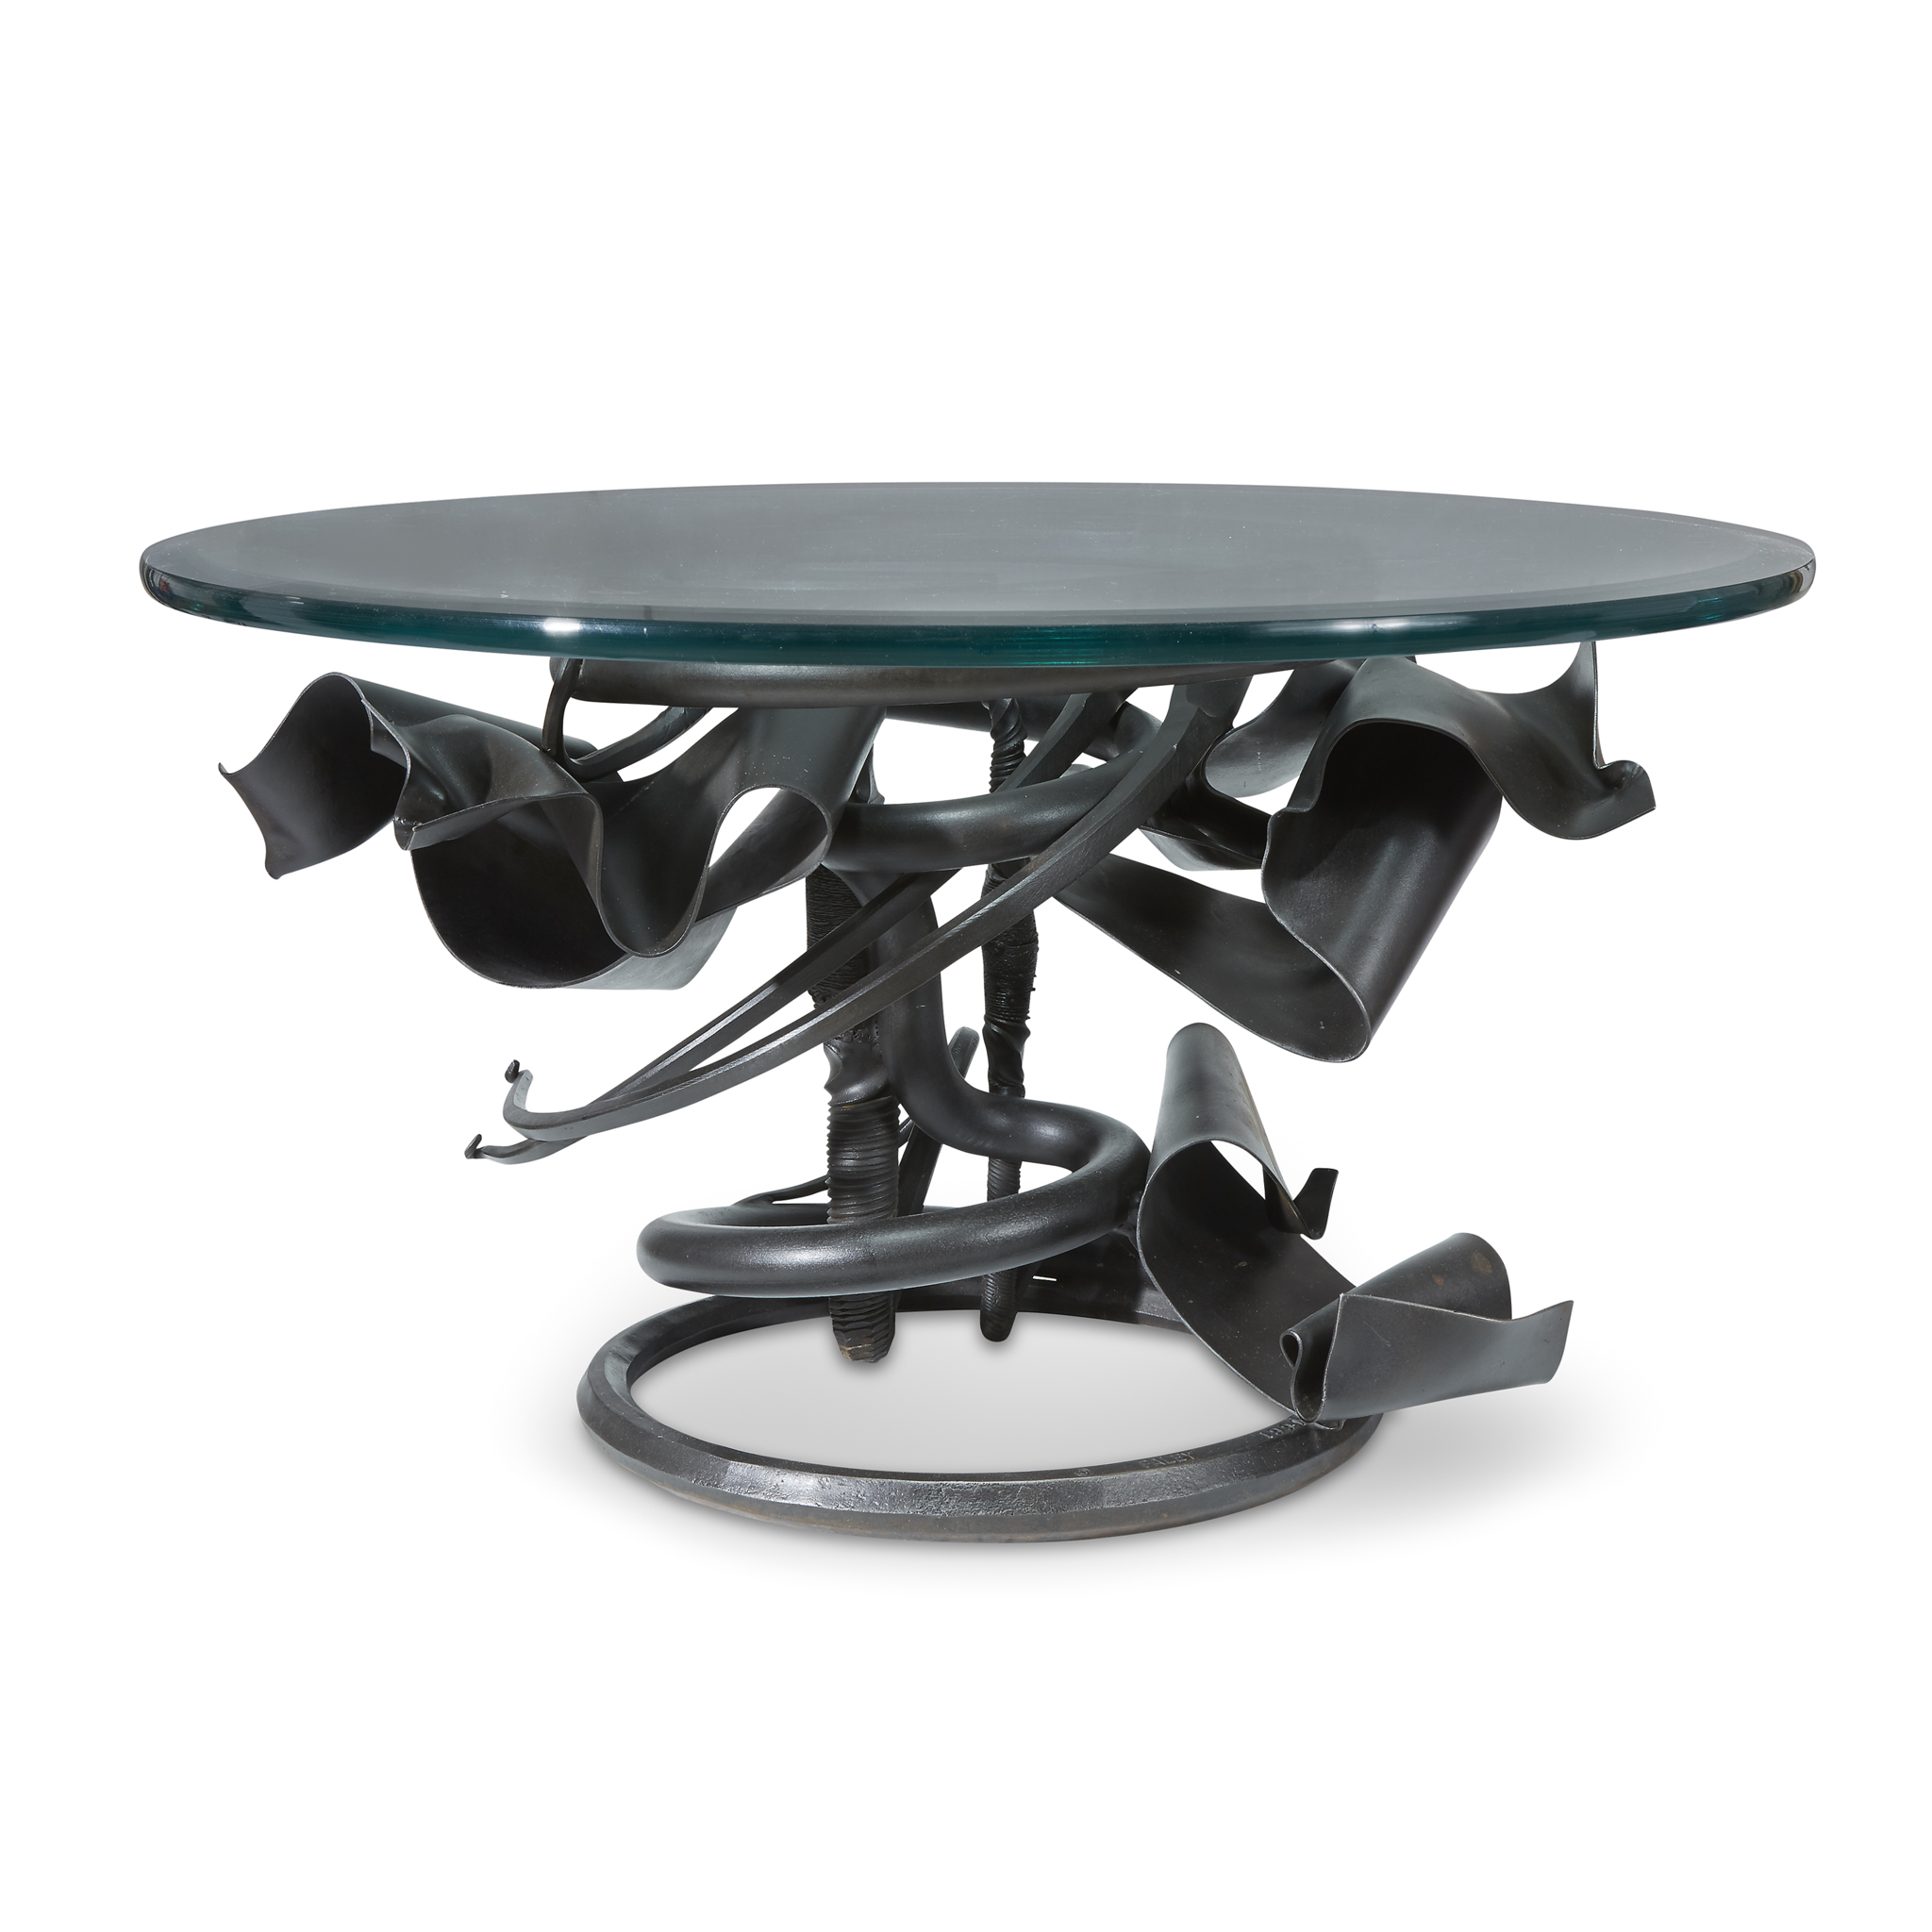 A coffee table created in 1991 by American sculptor Albert Paley.